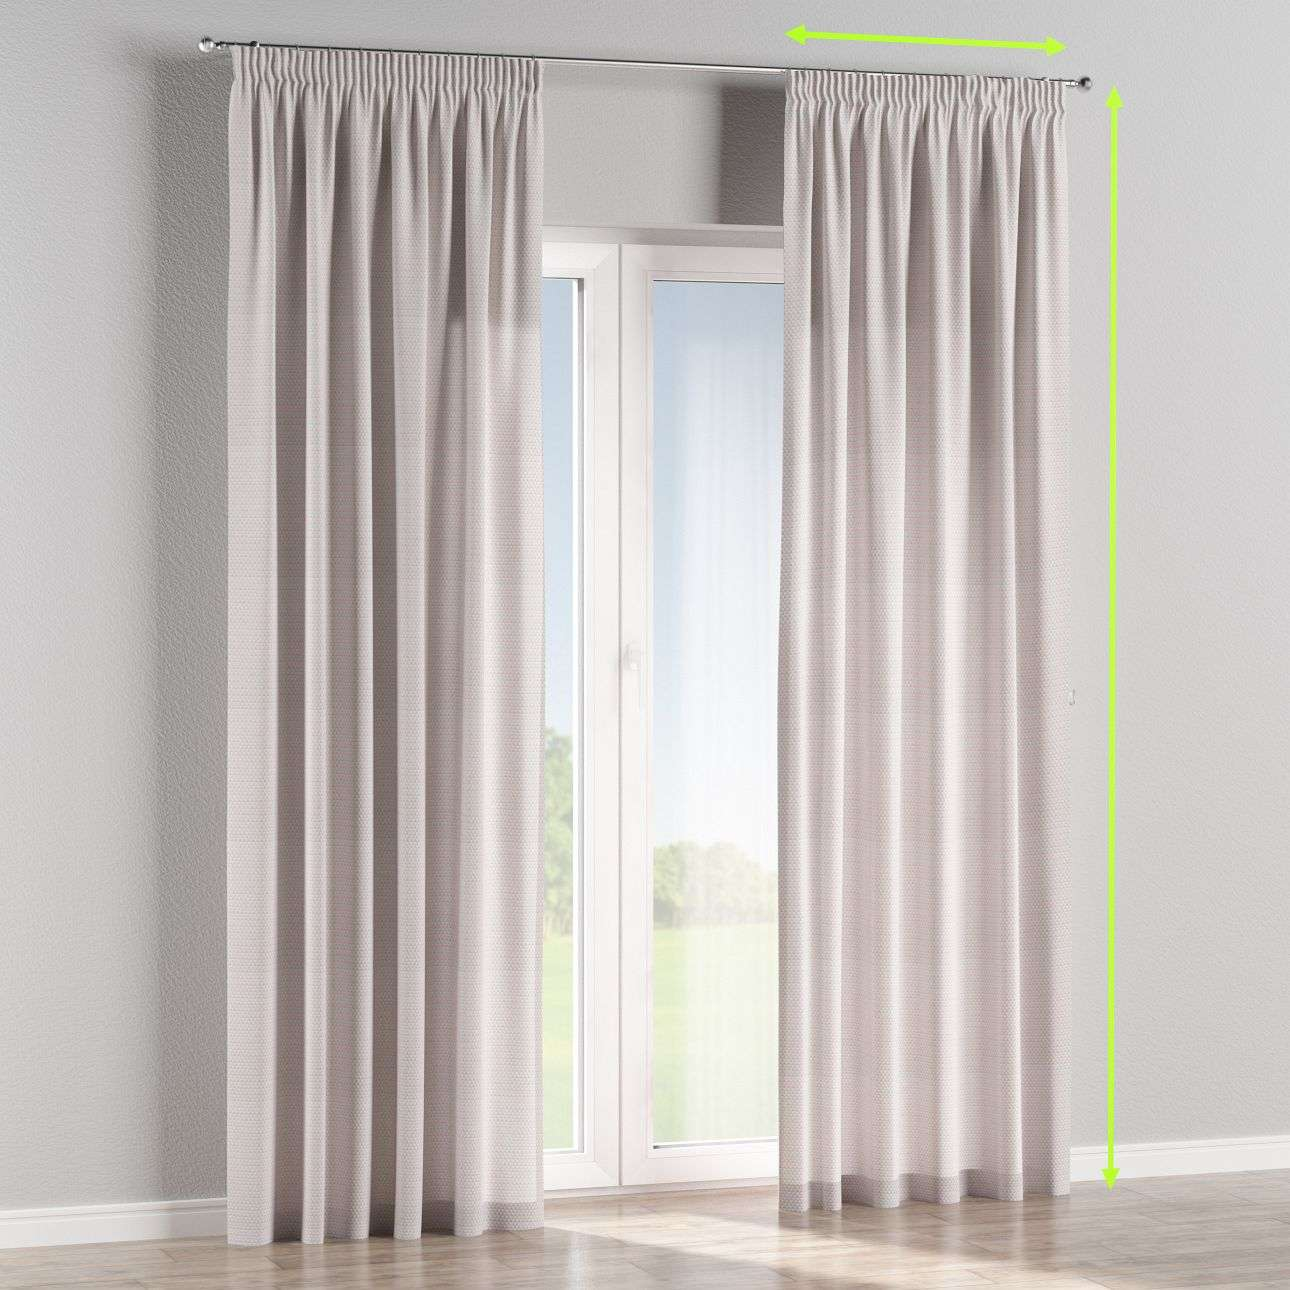 Pencil pleat lined curtains in collection Rustica, fabric: 140-28